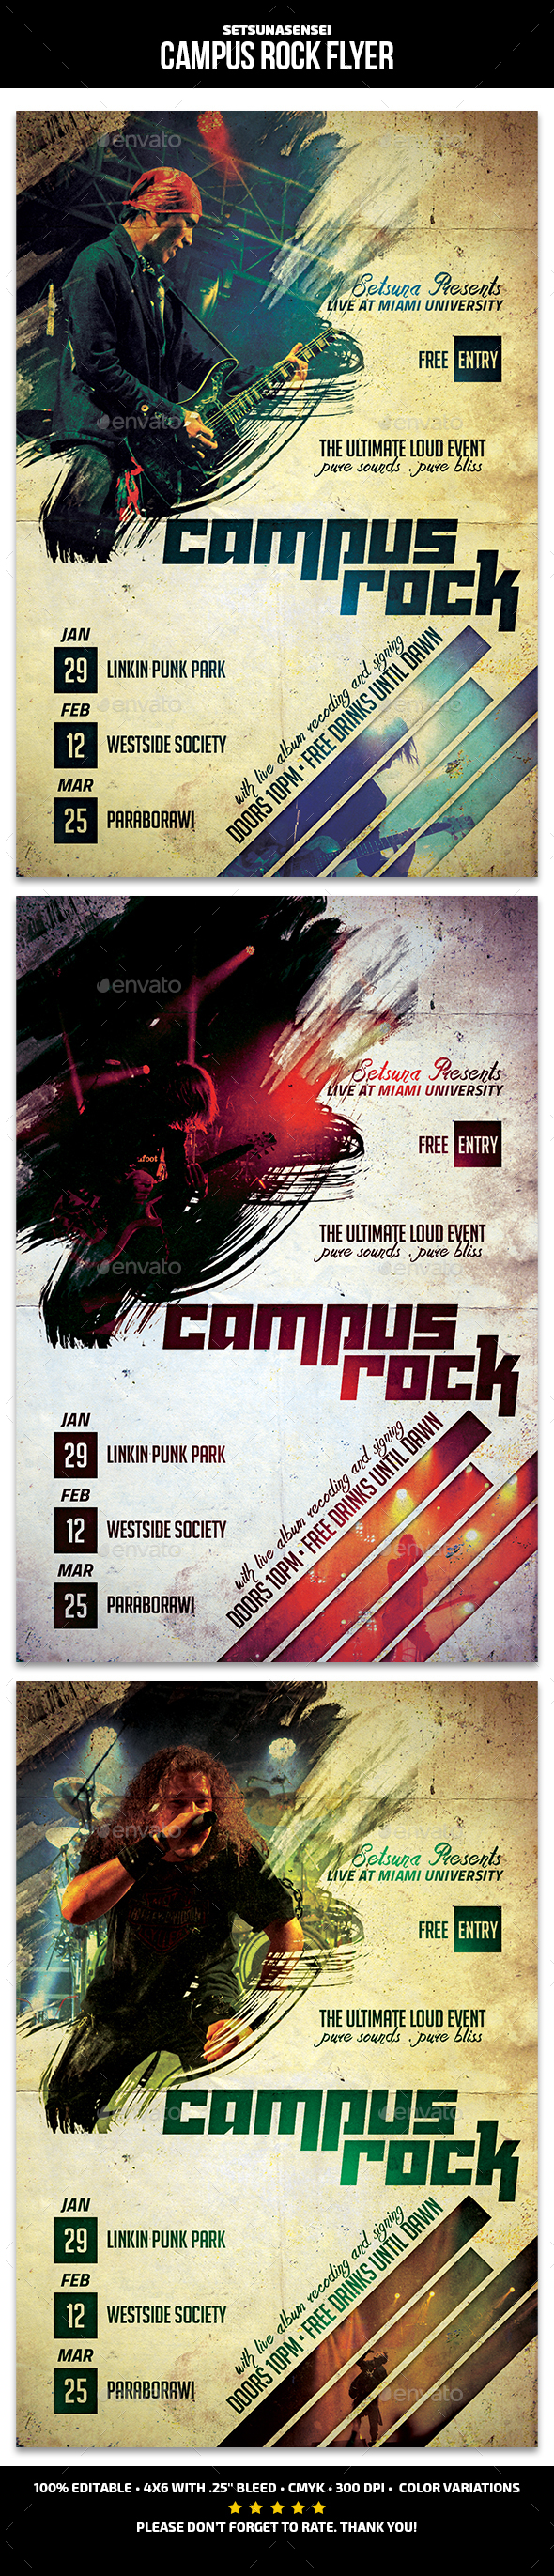 Campus Rock Flyer - Concerts Events